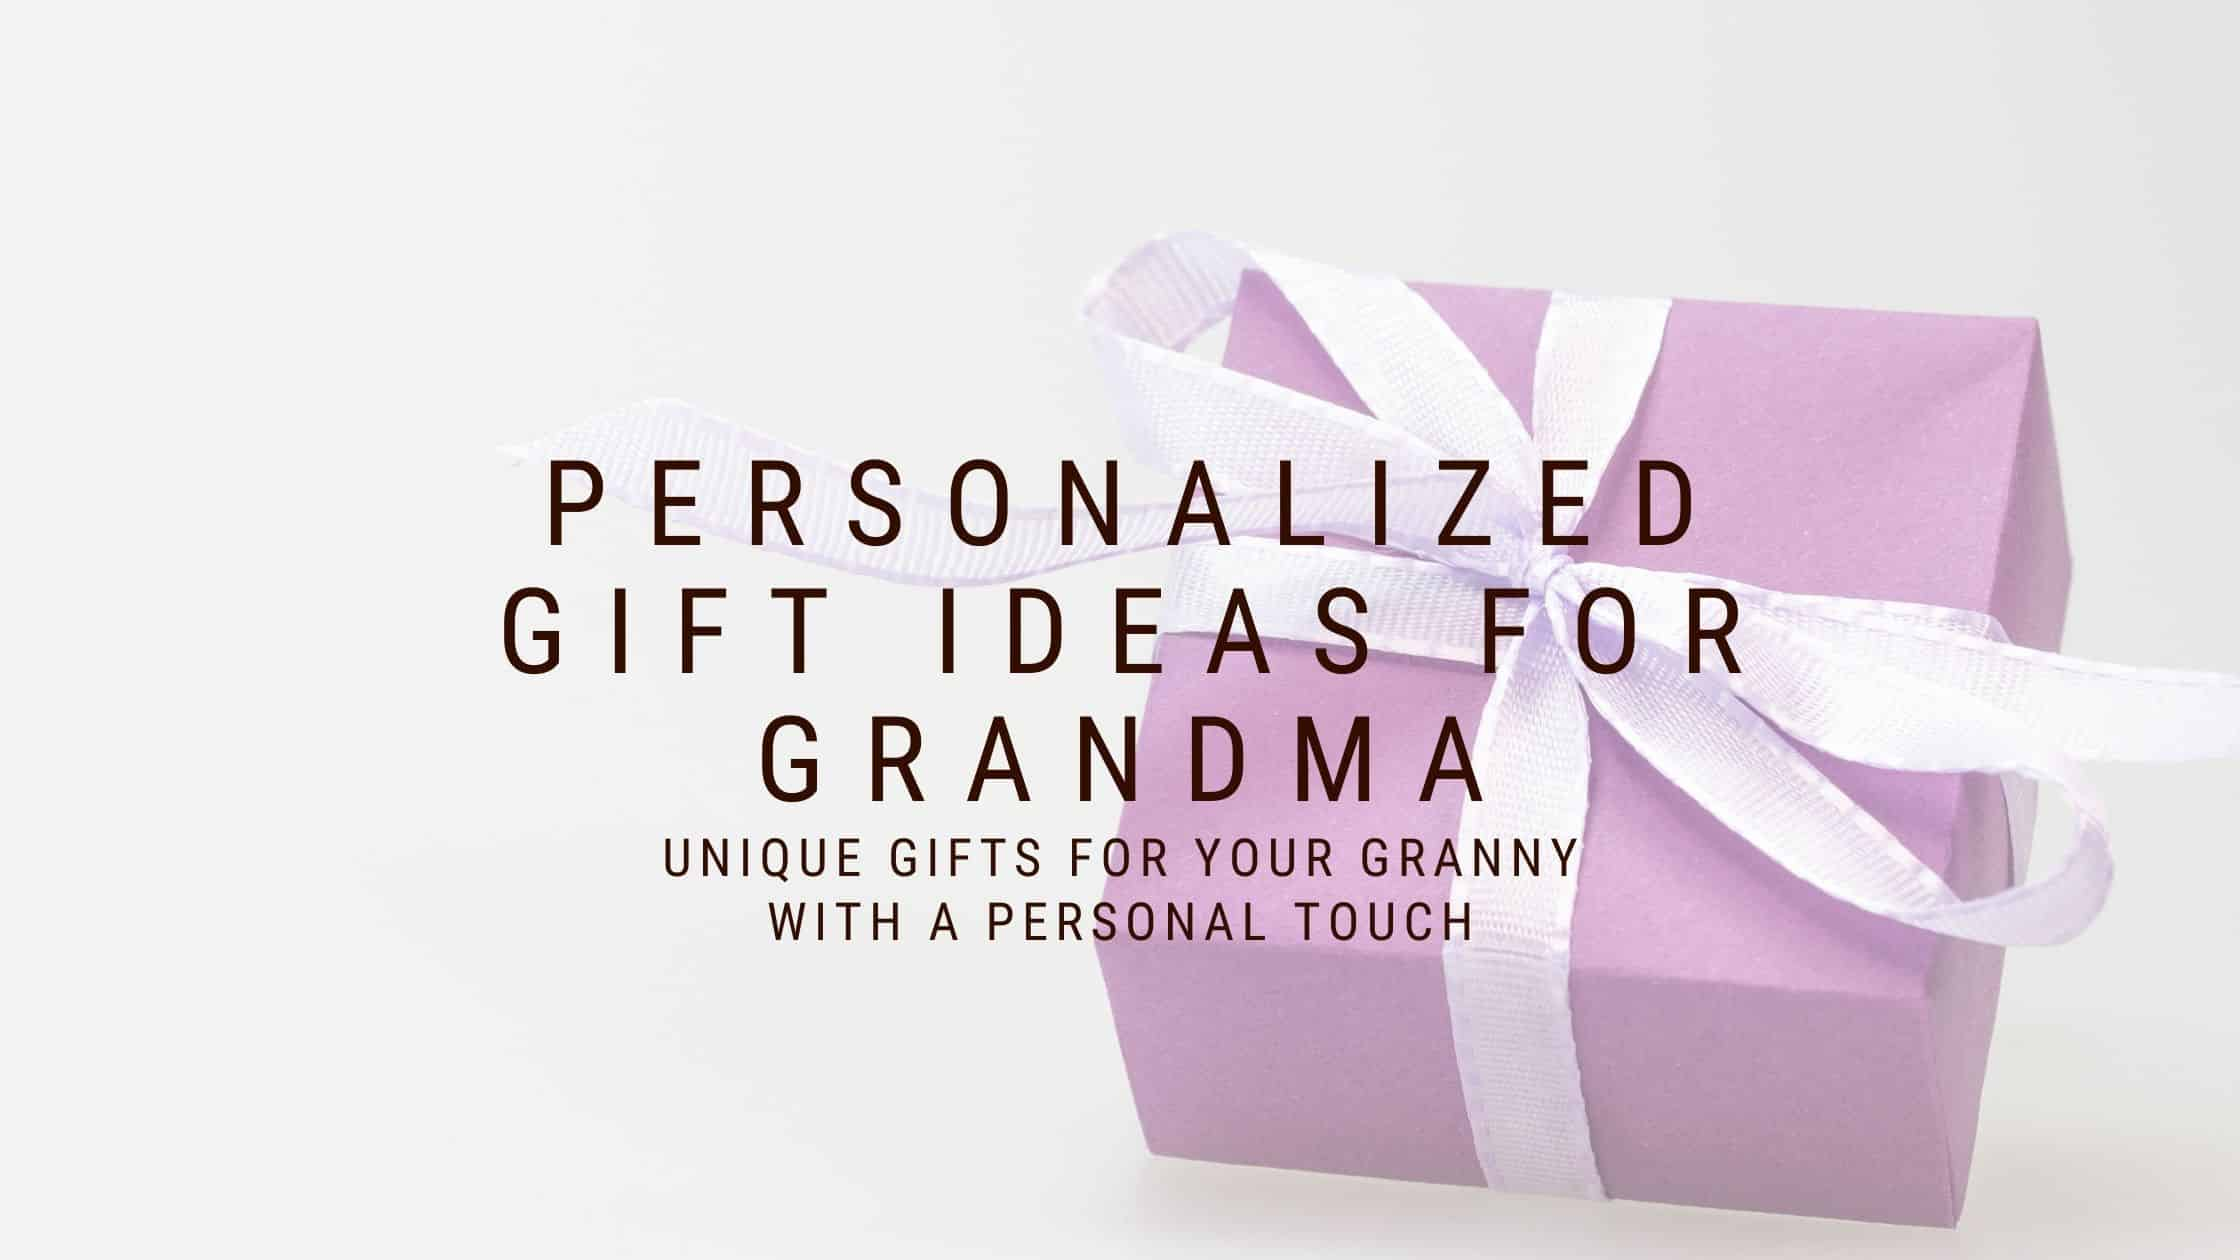 20+ Personalized Gift Ideas for Grandma to Make Her Heart Melt (2021)